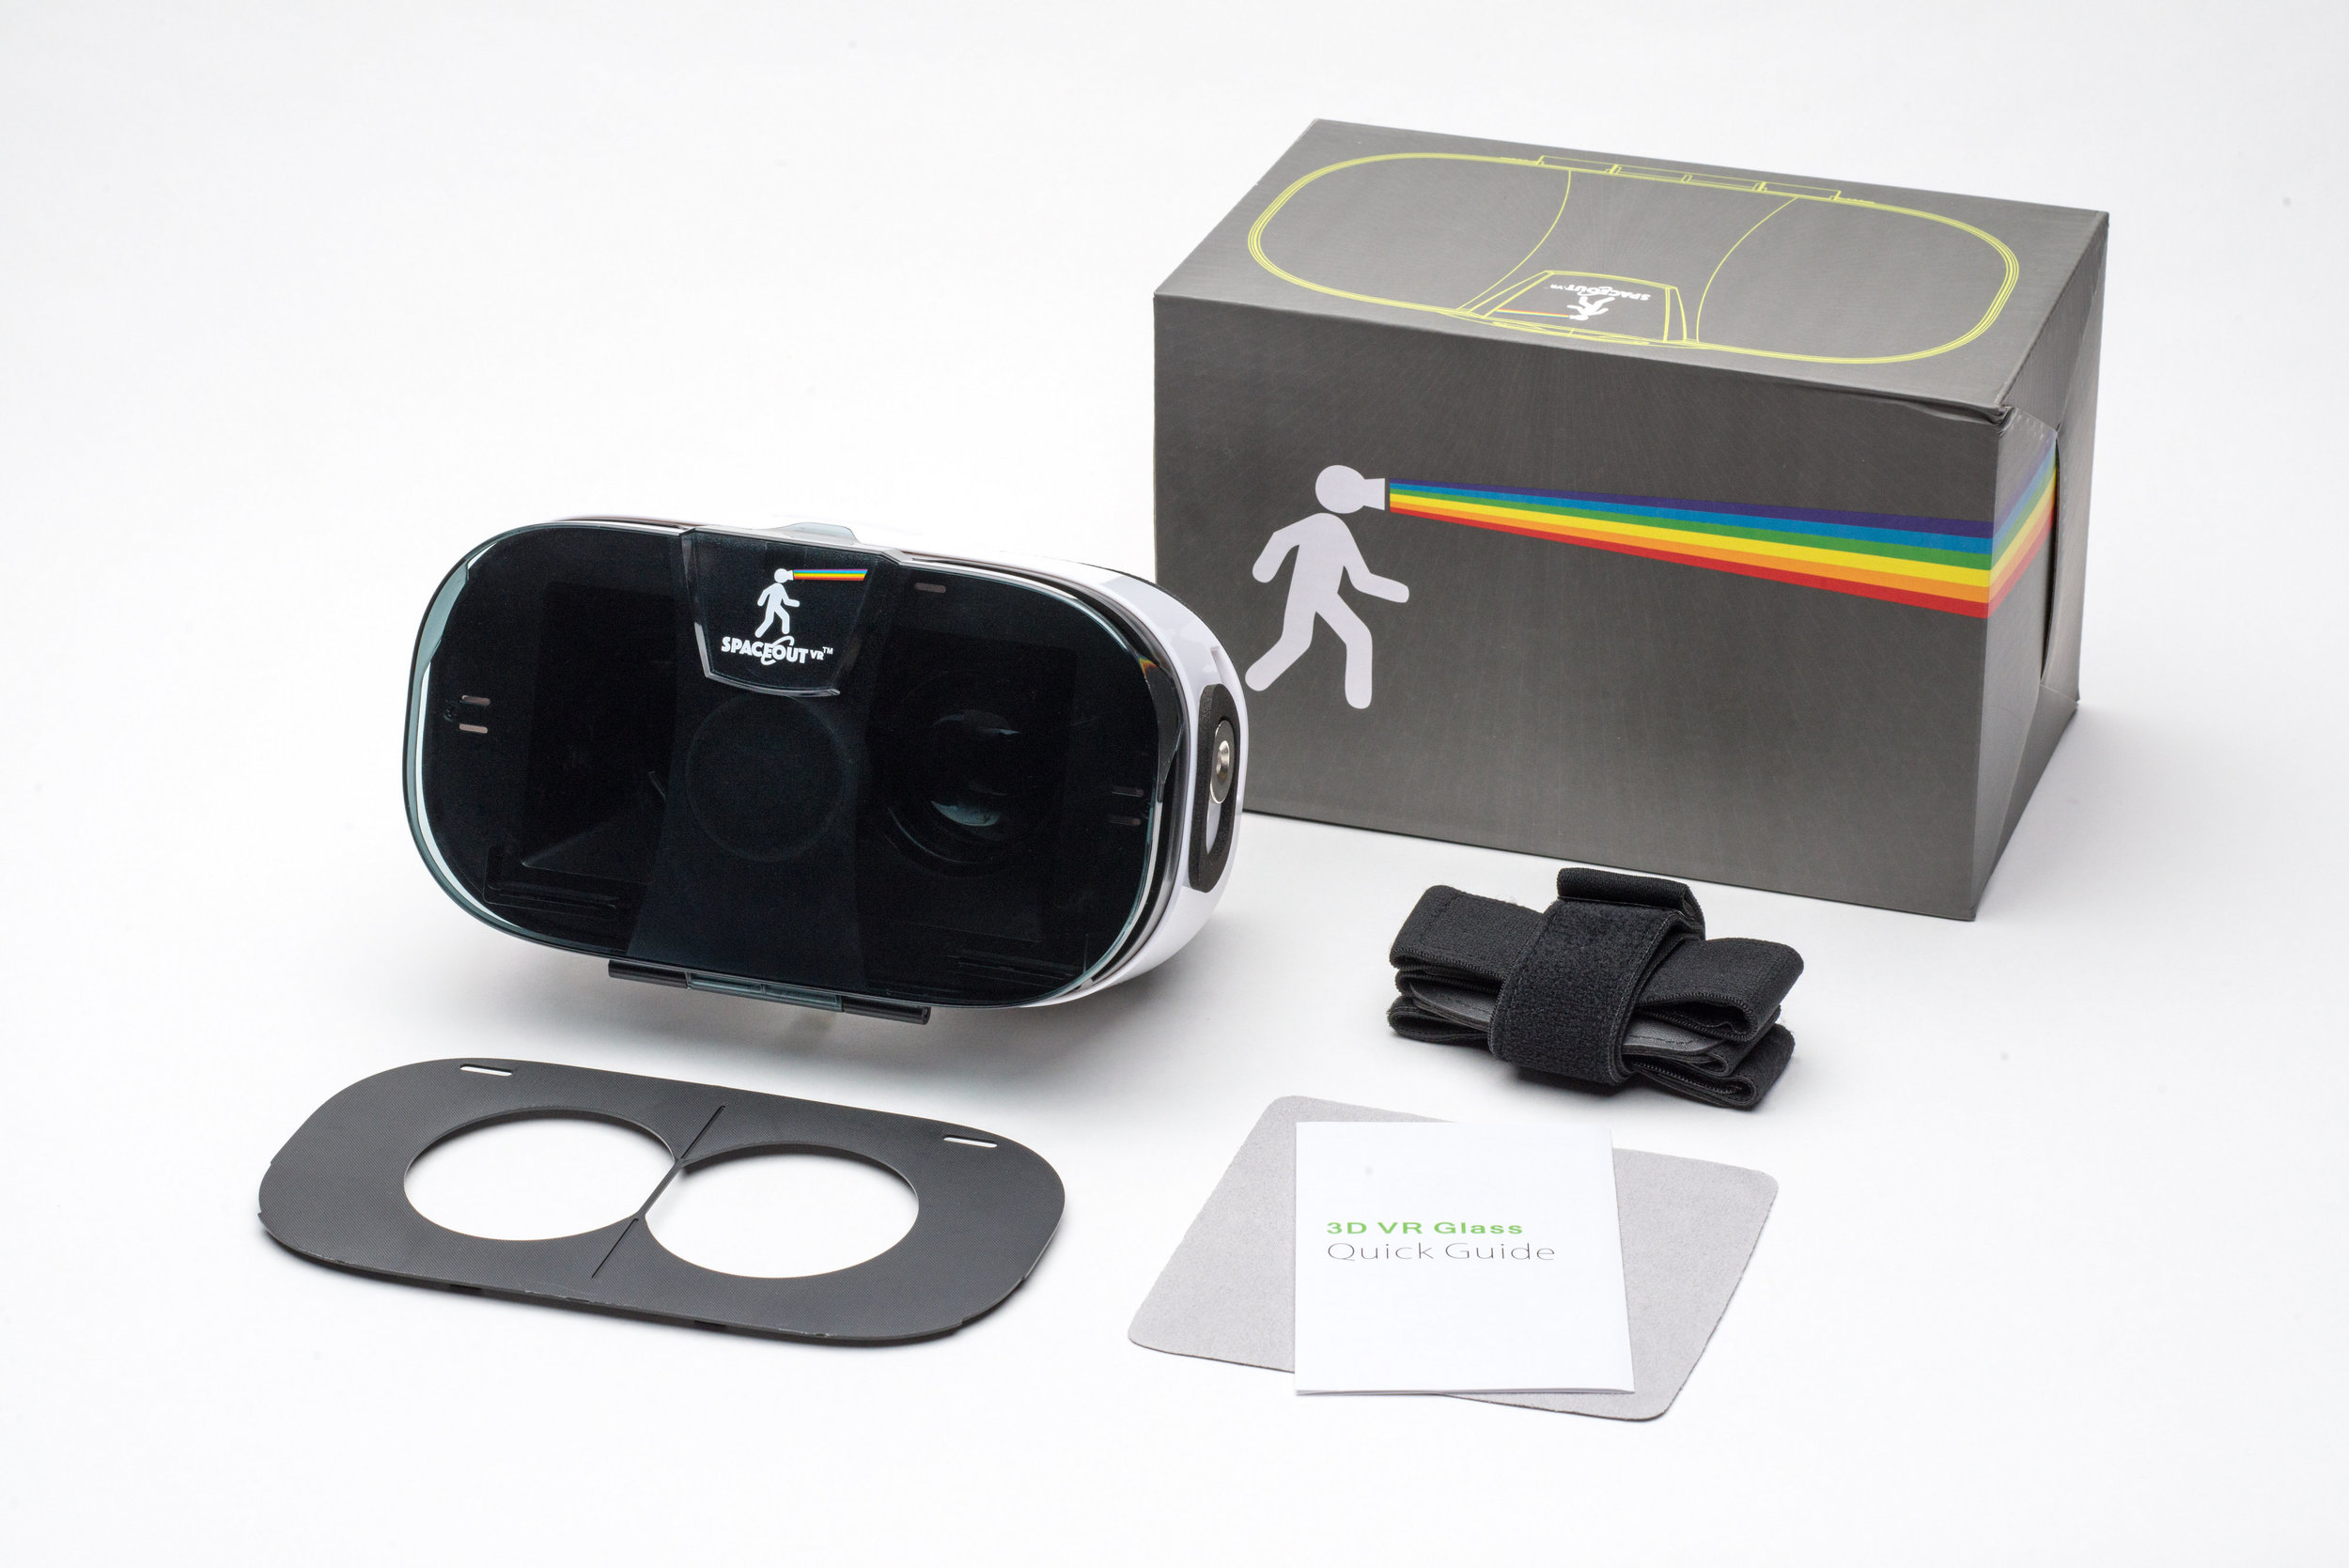 Spaceout VR Headset 7 12 2016-Studio-0014.jpg